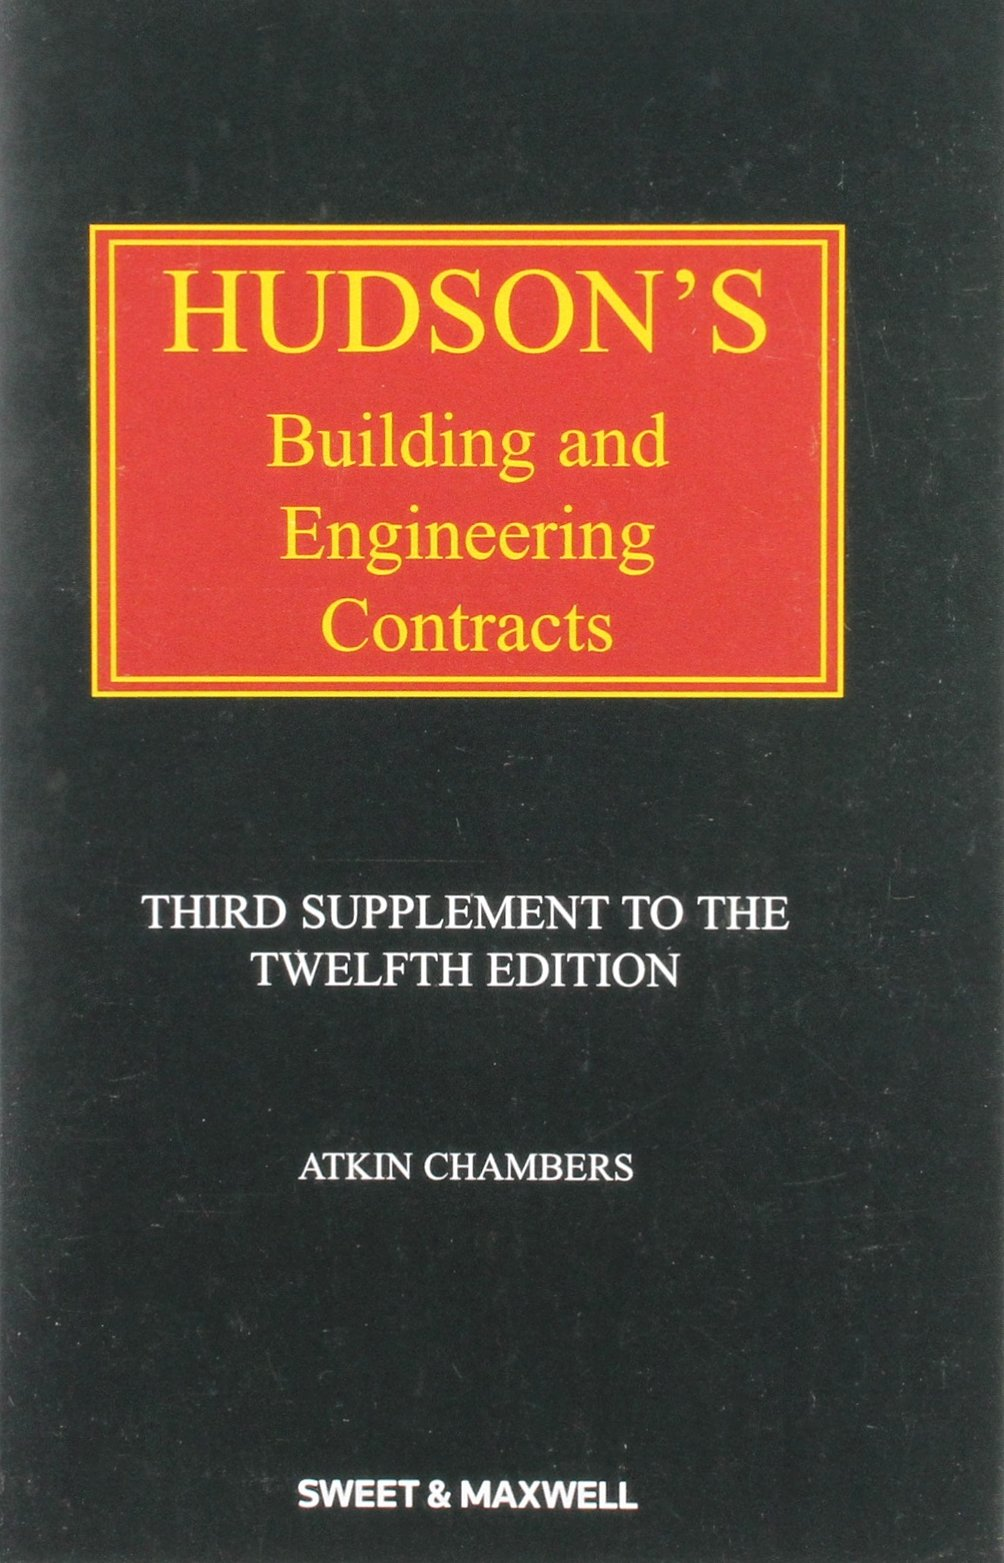 Download Hudson's Building and Engineering Contracts 3rd Supplement PDF Text fb2 book